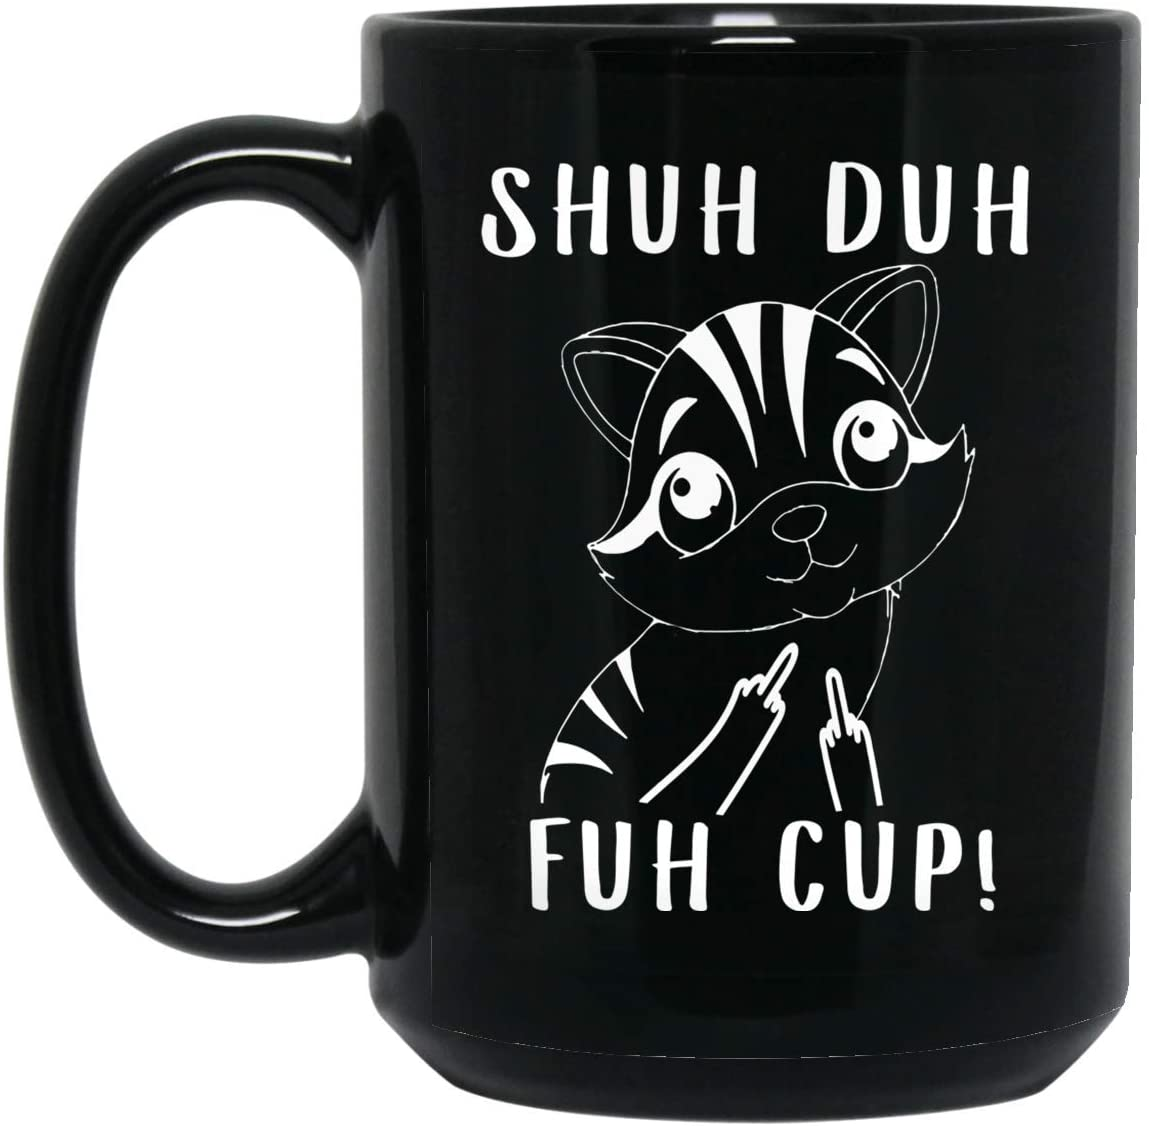 Funny Havana Brown Cat Shuh Duh Fuh Cup Middle Finger Black Coffee Mug 15oz